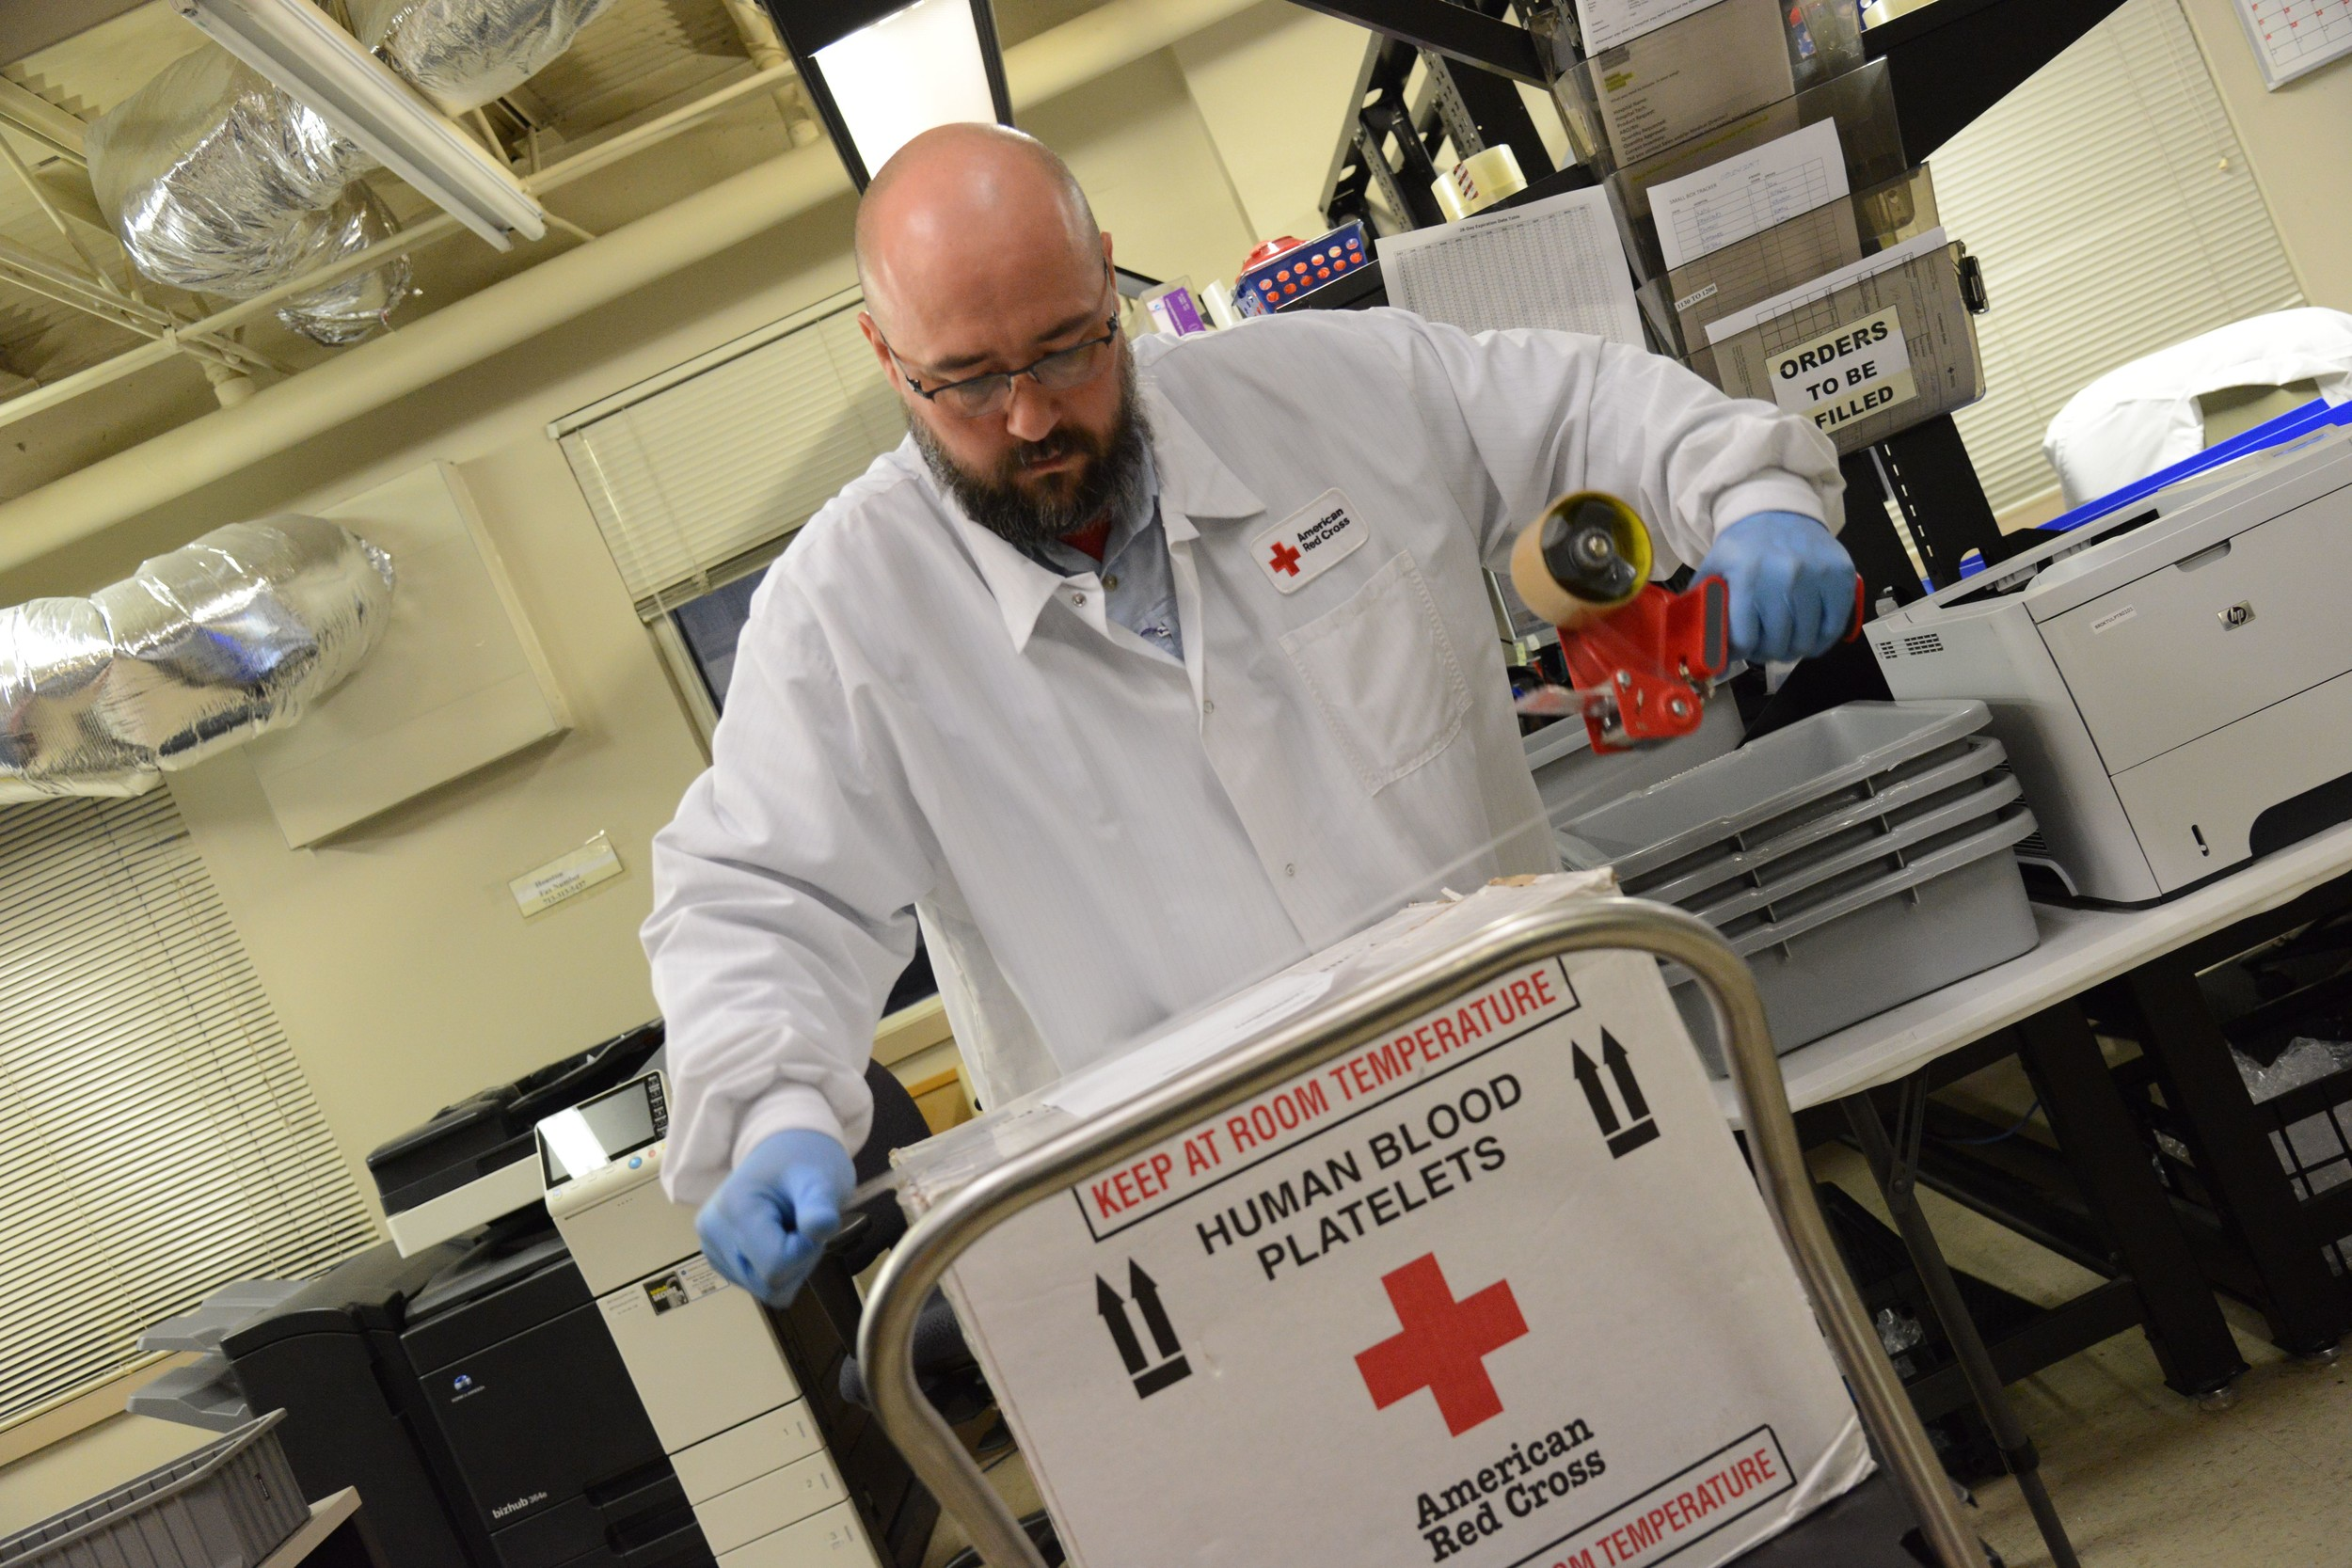 Photo by Daniel Cima for The American Red CrossRed Cross employee Bob Otwell prepares blood products including FFP, Whole Blood and Platelets for distribution to nearby hospitals on Aug. 27, 2017, in Houston, Texas.